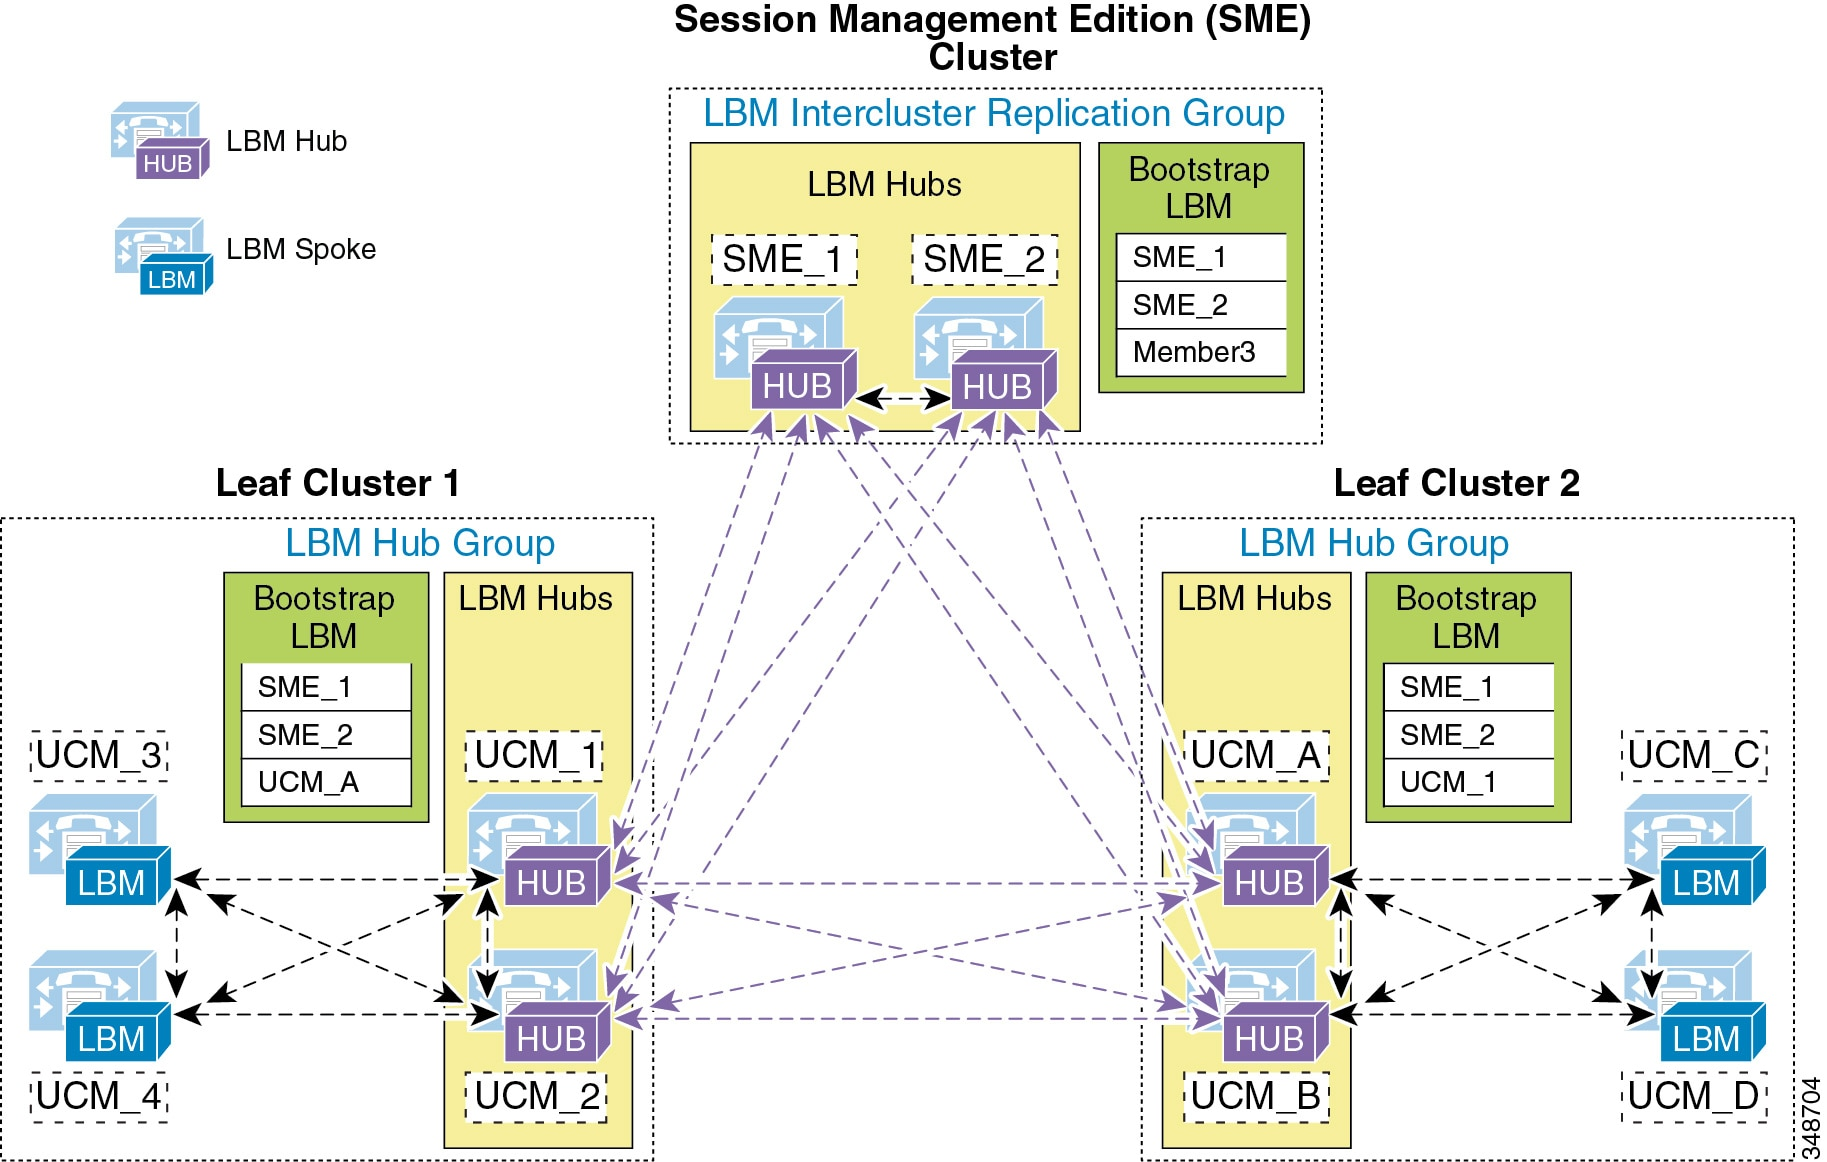 ... have been designated as the LBM hubs for their cluster. These LBM hubs  form the intercluster LBM replication network. The bootstrap LBMs configured  in ...